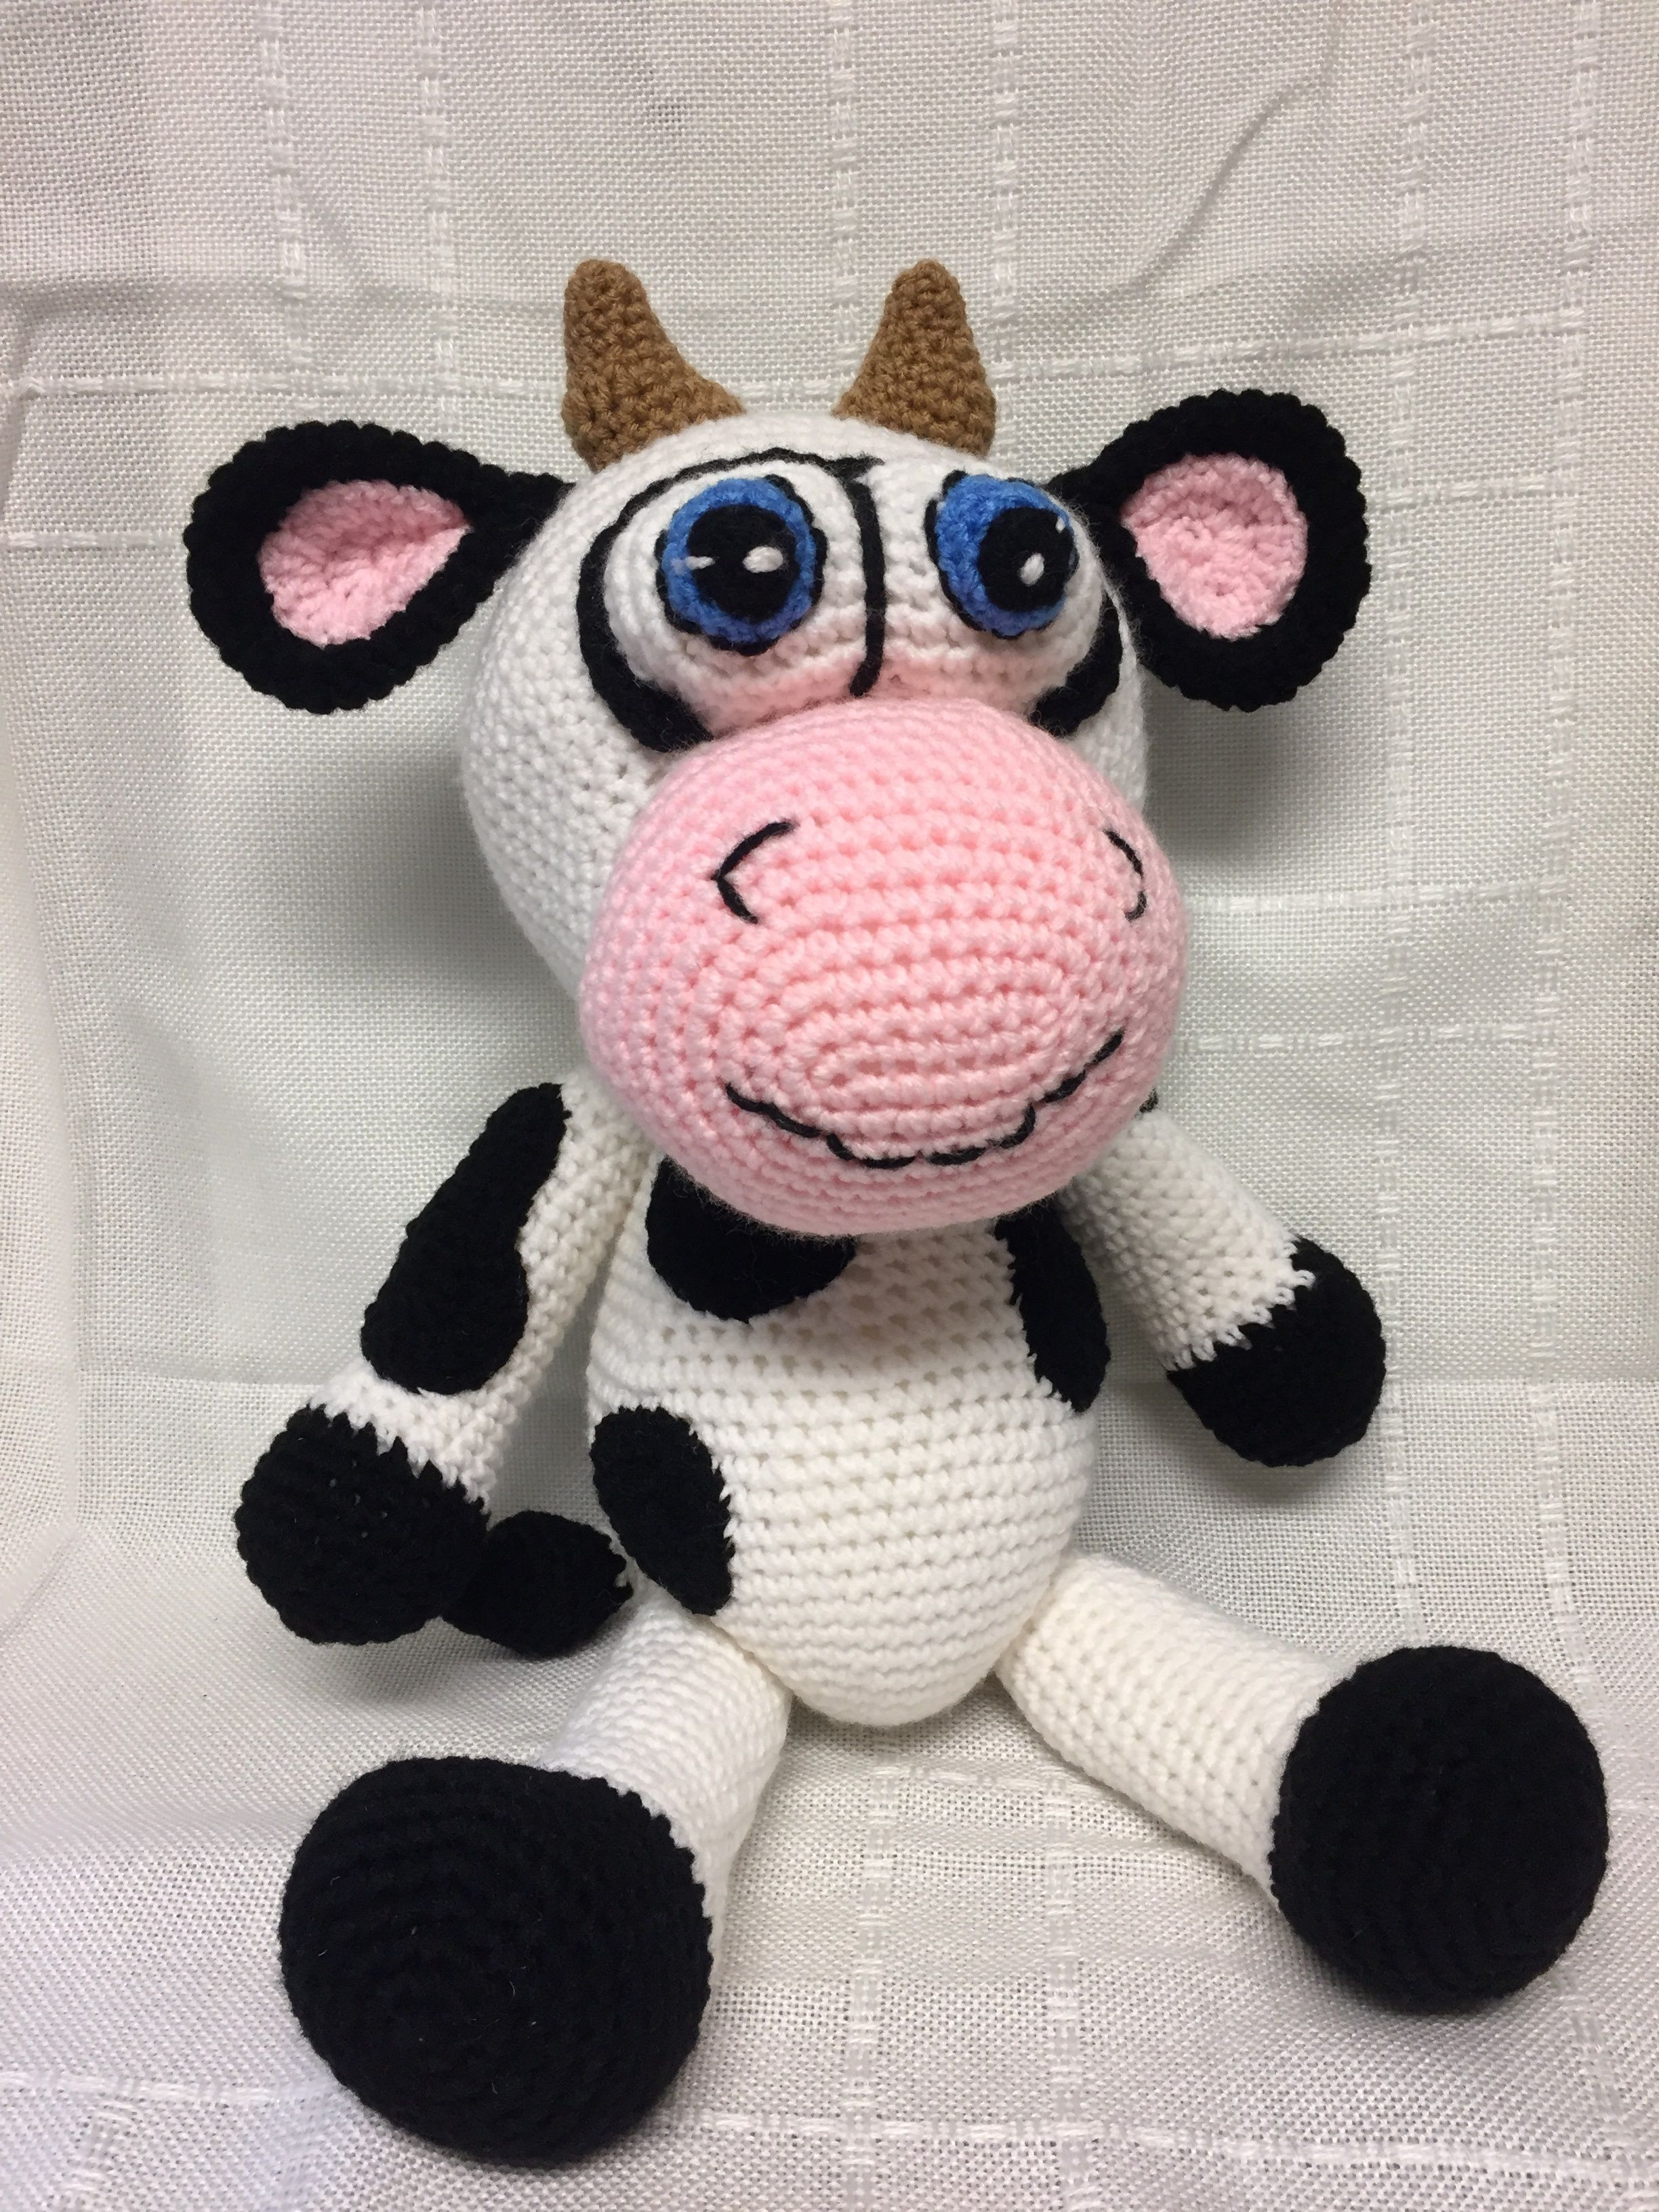 Homer the crocheted cow - found on etsy @memawscountrycrafts